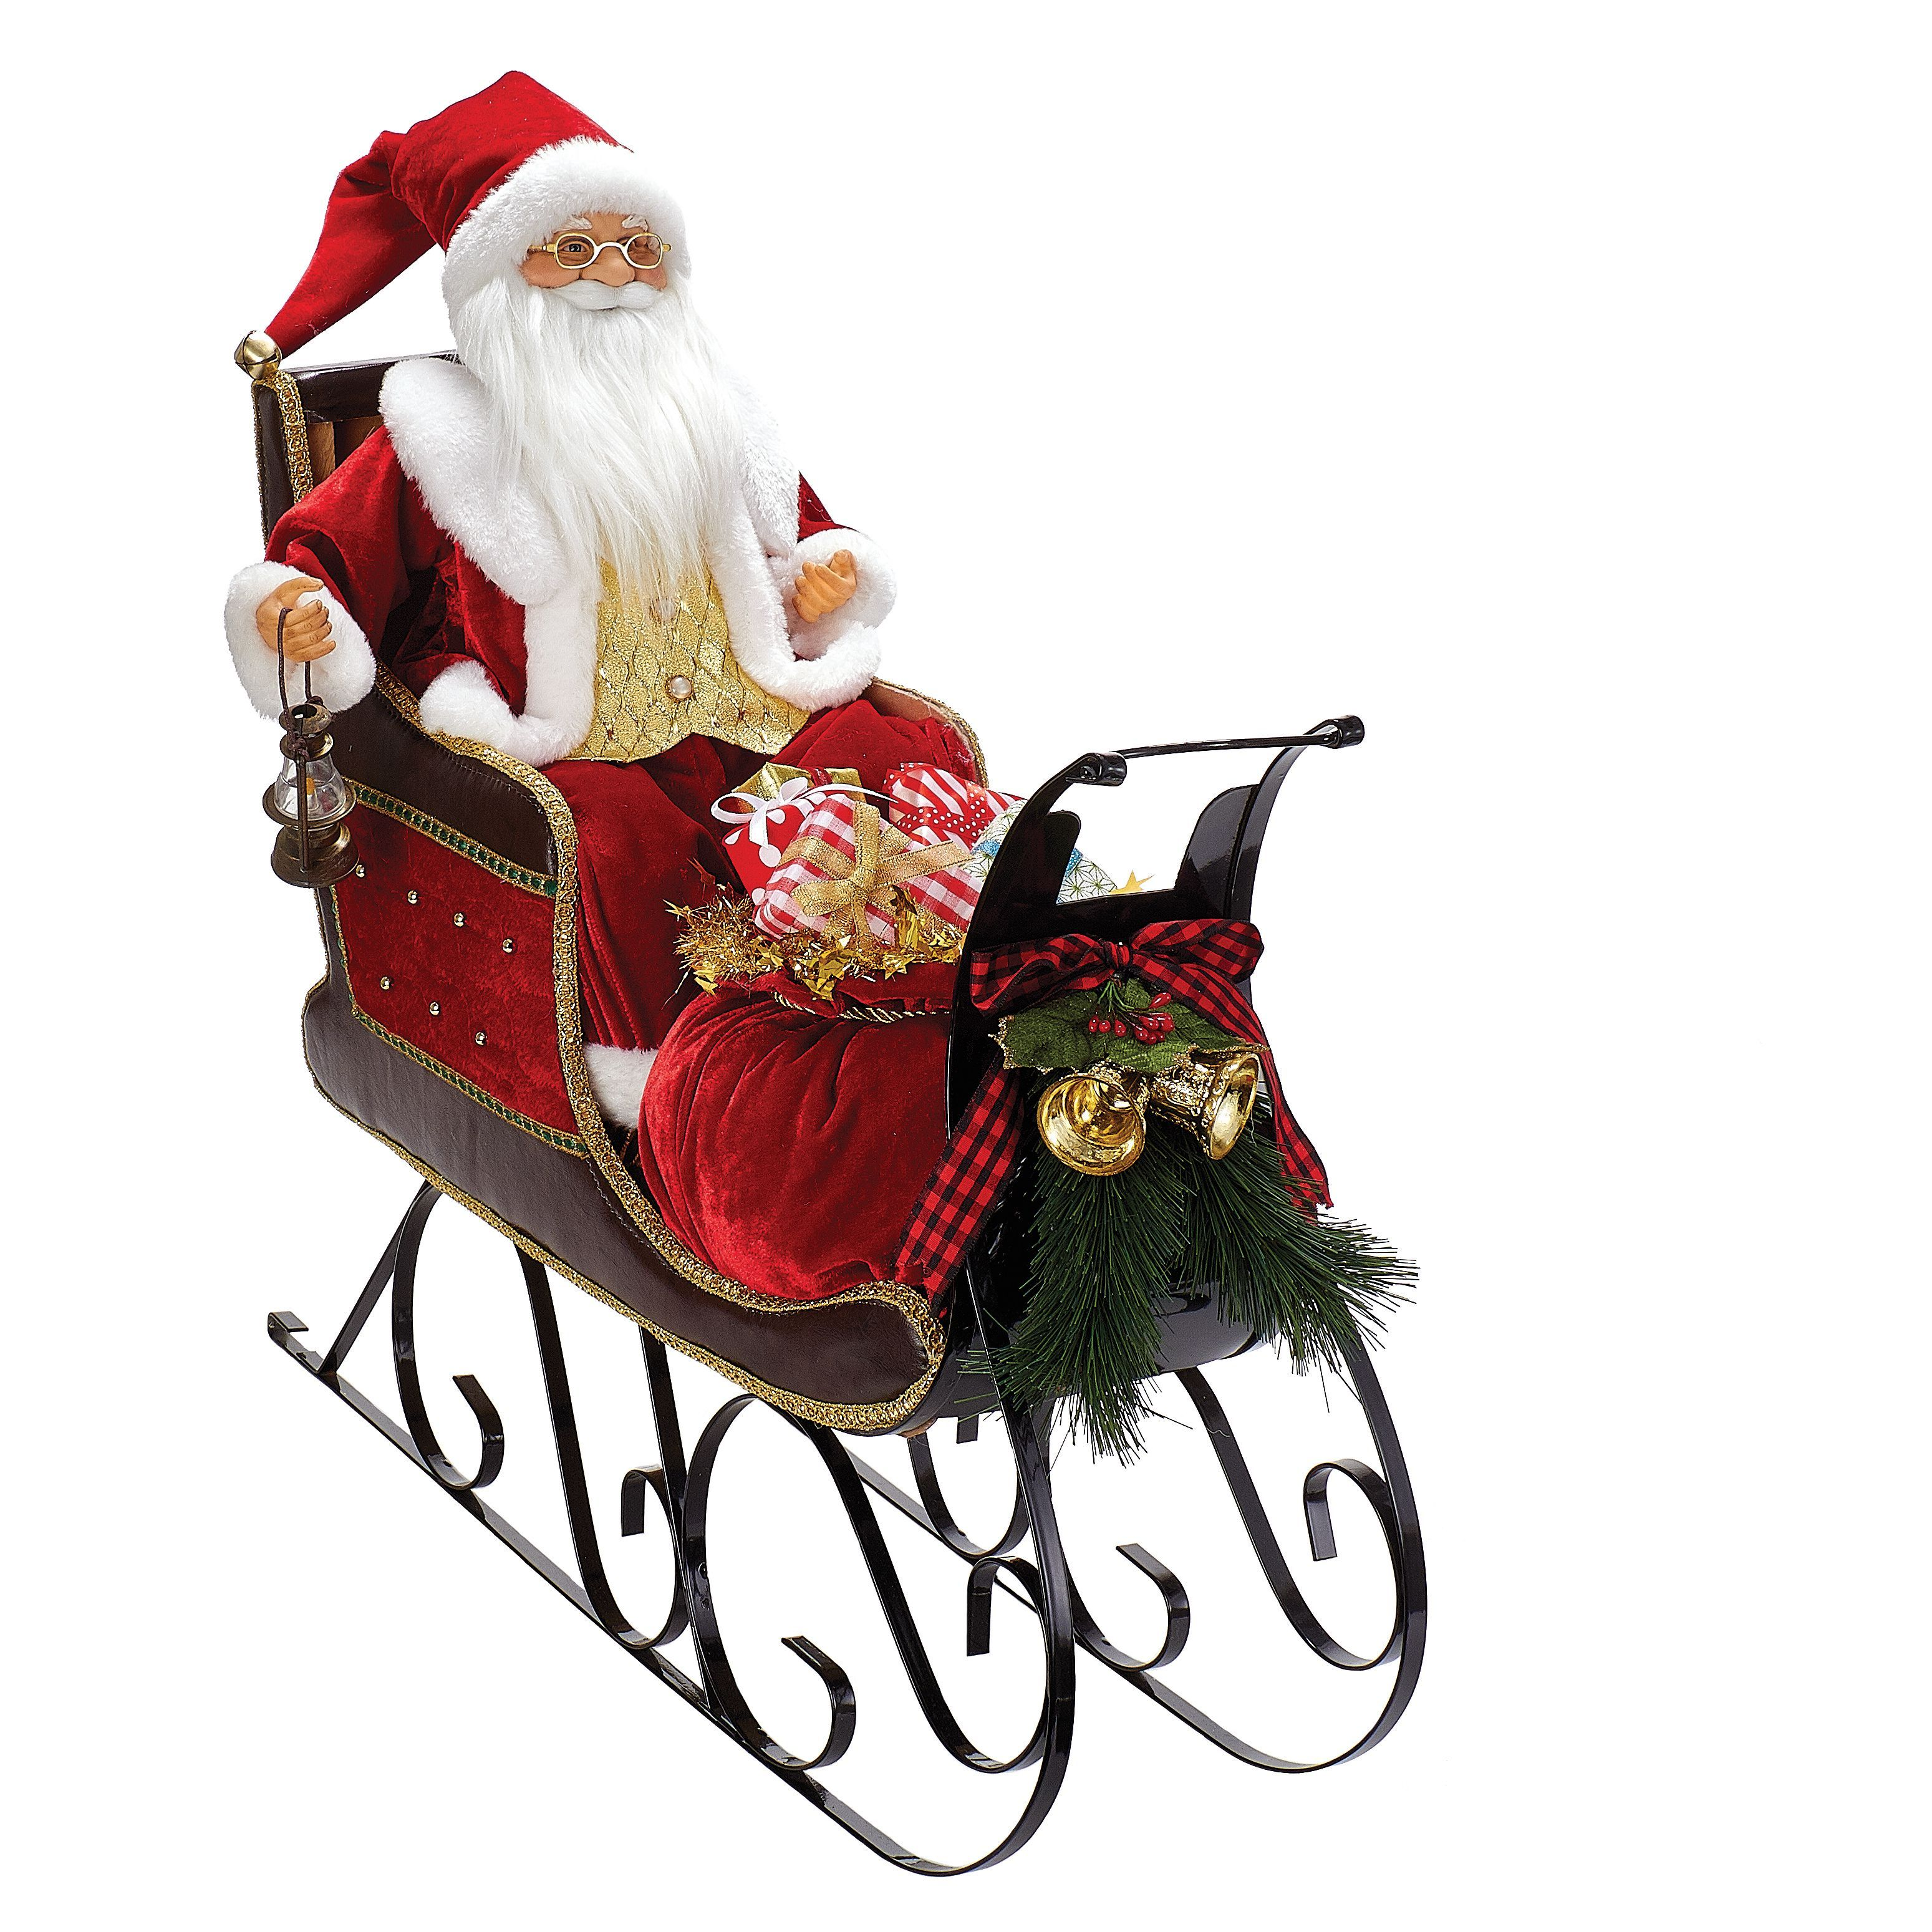 santa foam your our floral trade baskets ribbons vases pole sack statues decorative of glass the claus with to uksm bring a room living will decor santas cellophane touch north